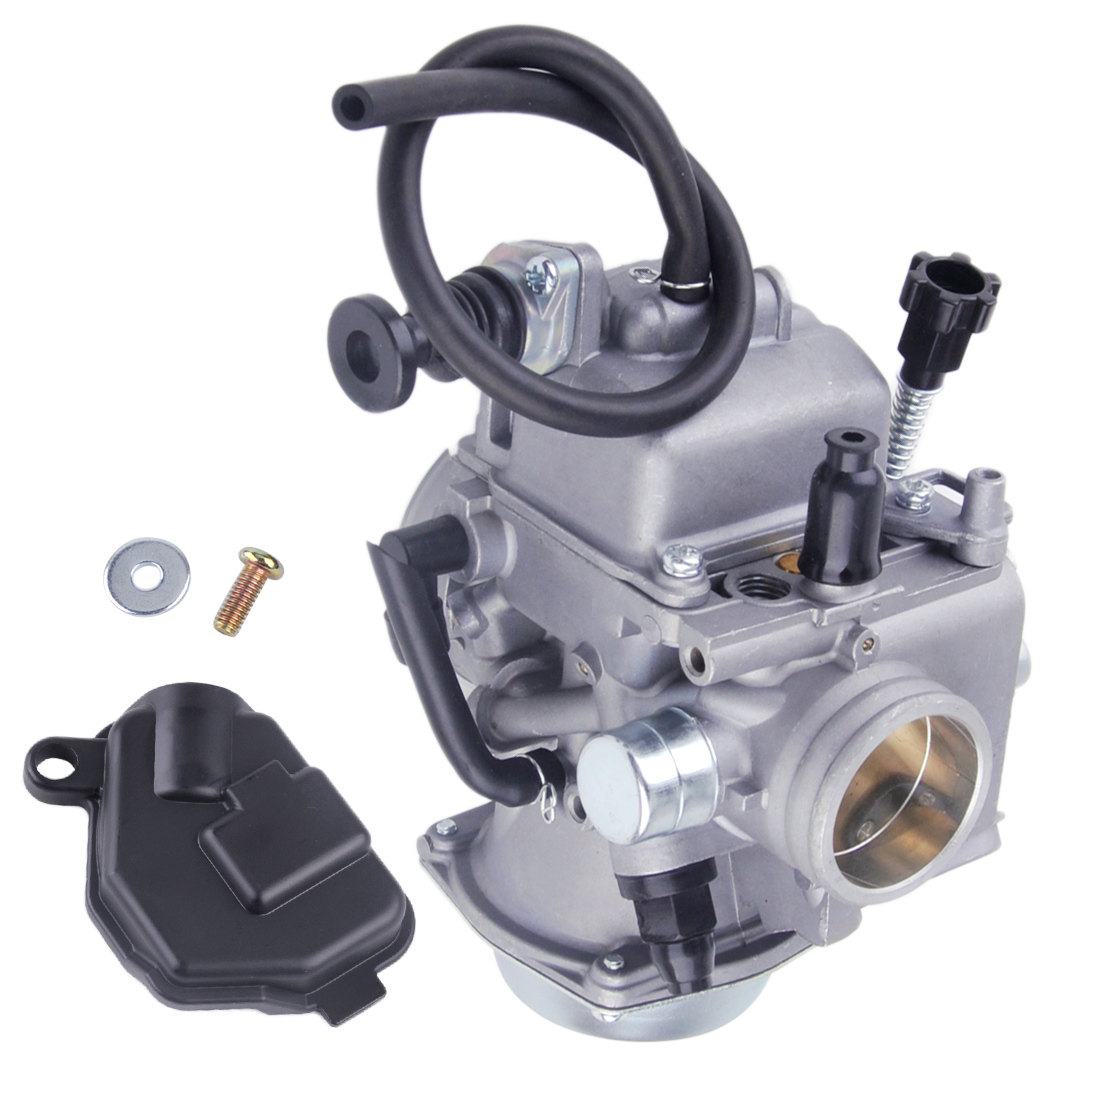 beler Carburetor Cab with 3 Rubber Tube Fit for Honda TRX250 TRX 250 Fourtrax ATV Carb 1985 1986 1987